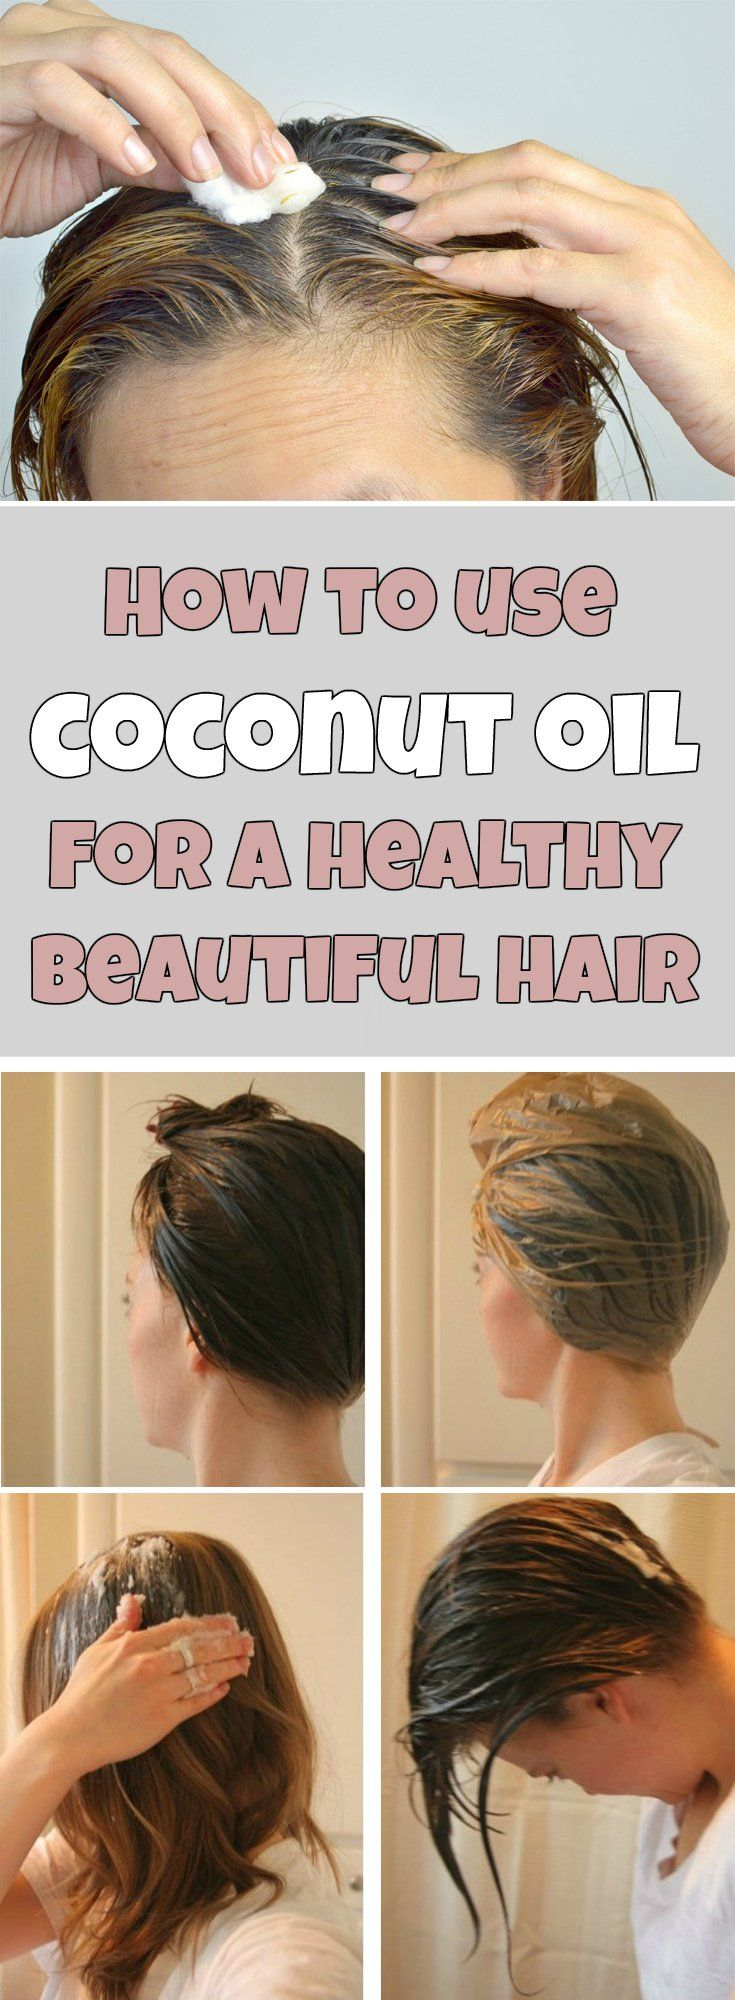 How to use hair masks - How To Use Coconut Oil For A Healthy Beautiful Hair